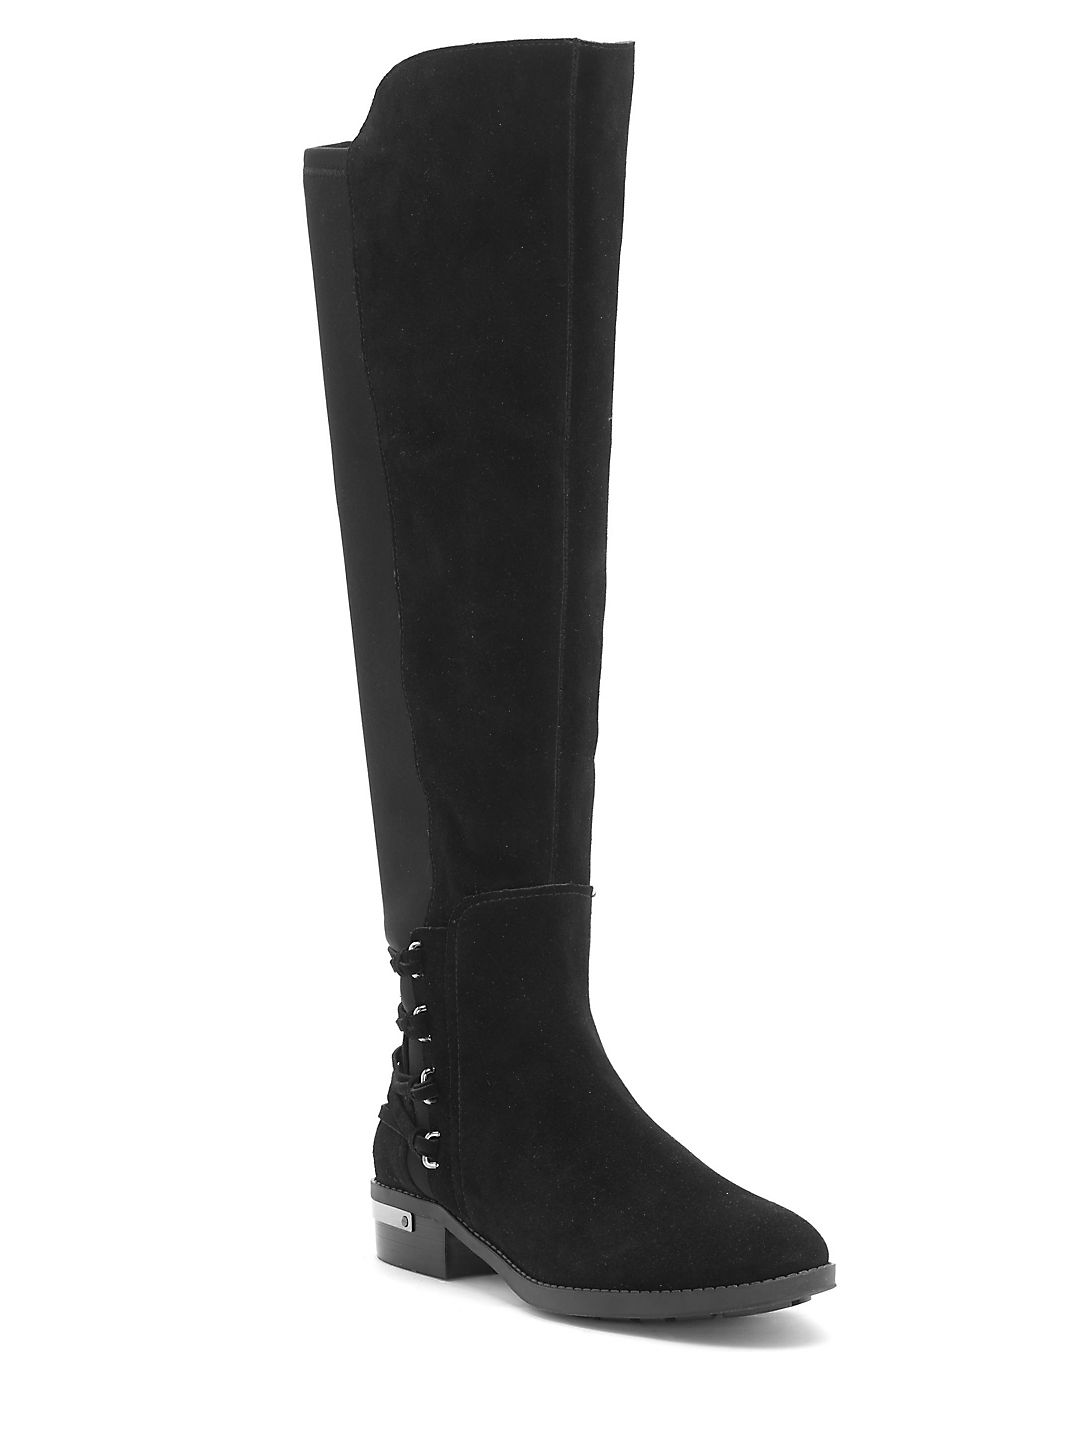 Paulomi Suede Knee-High Boots